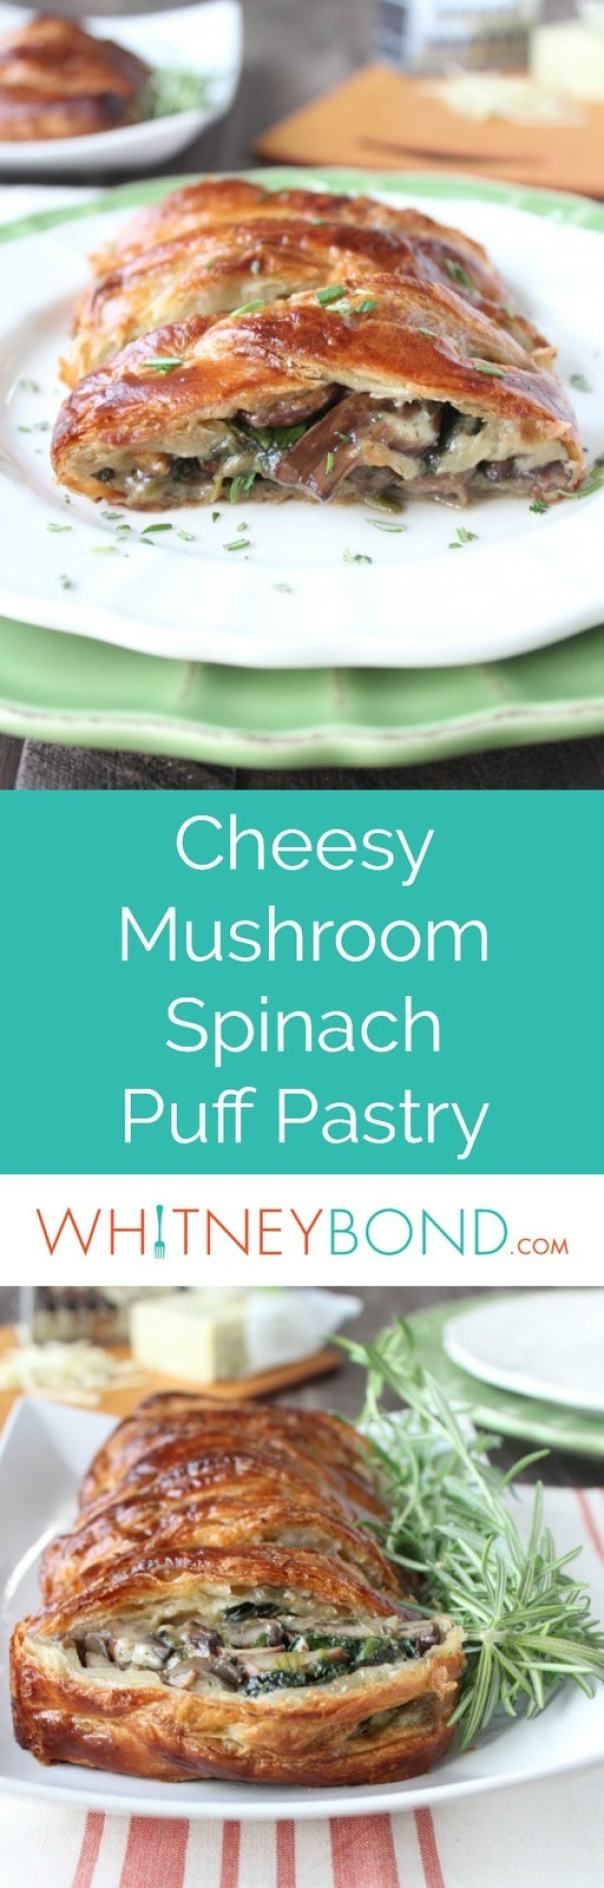 This vegetarian puff pastry recipe is filled with sautéed mushrooms, spinach, and cheddar cheese. Perfect as an appetizer or meatless Monday dinner.